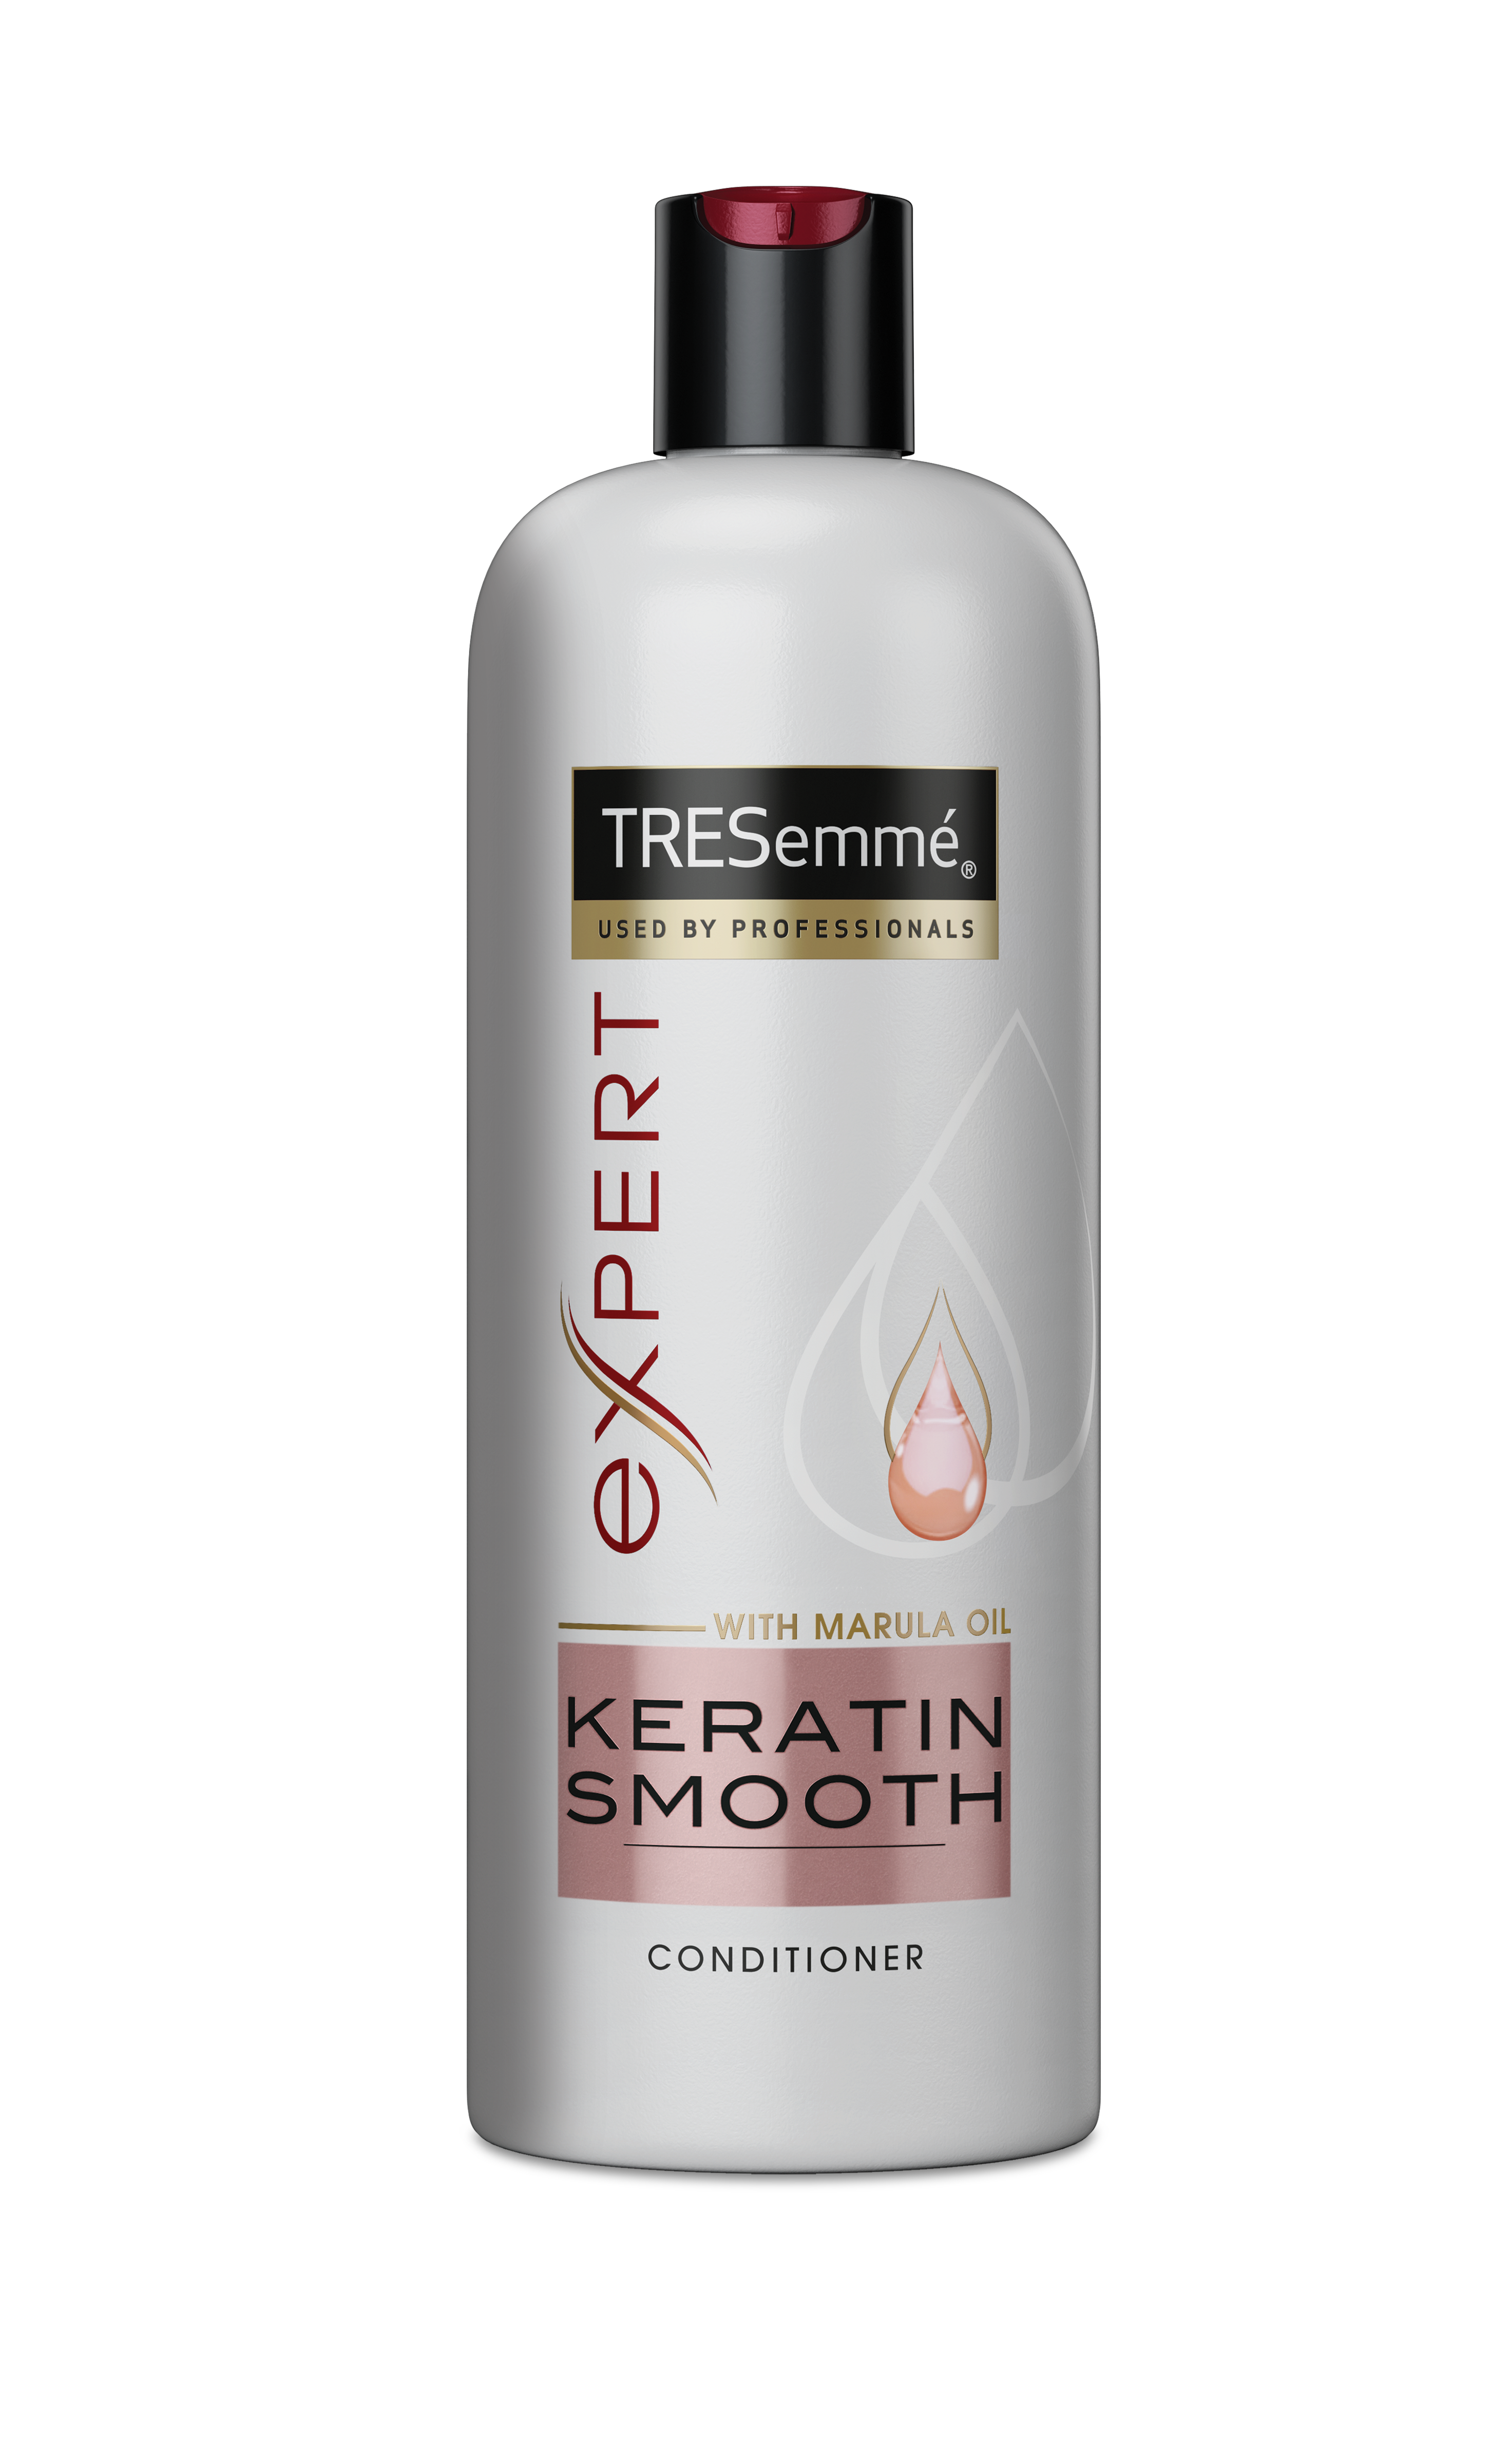 TRESemmé Keratin Smooth/Marula Oil Conditioner